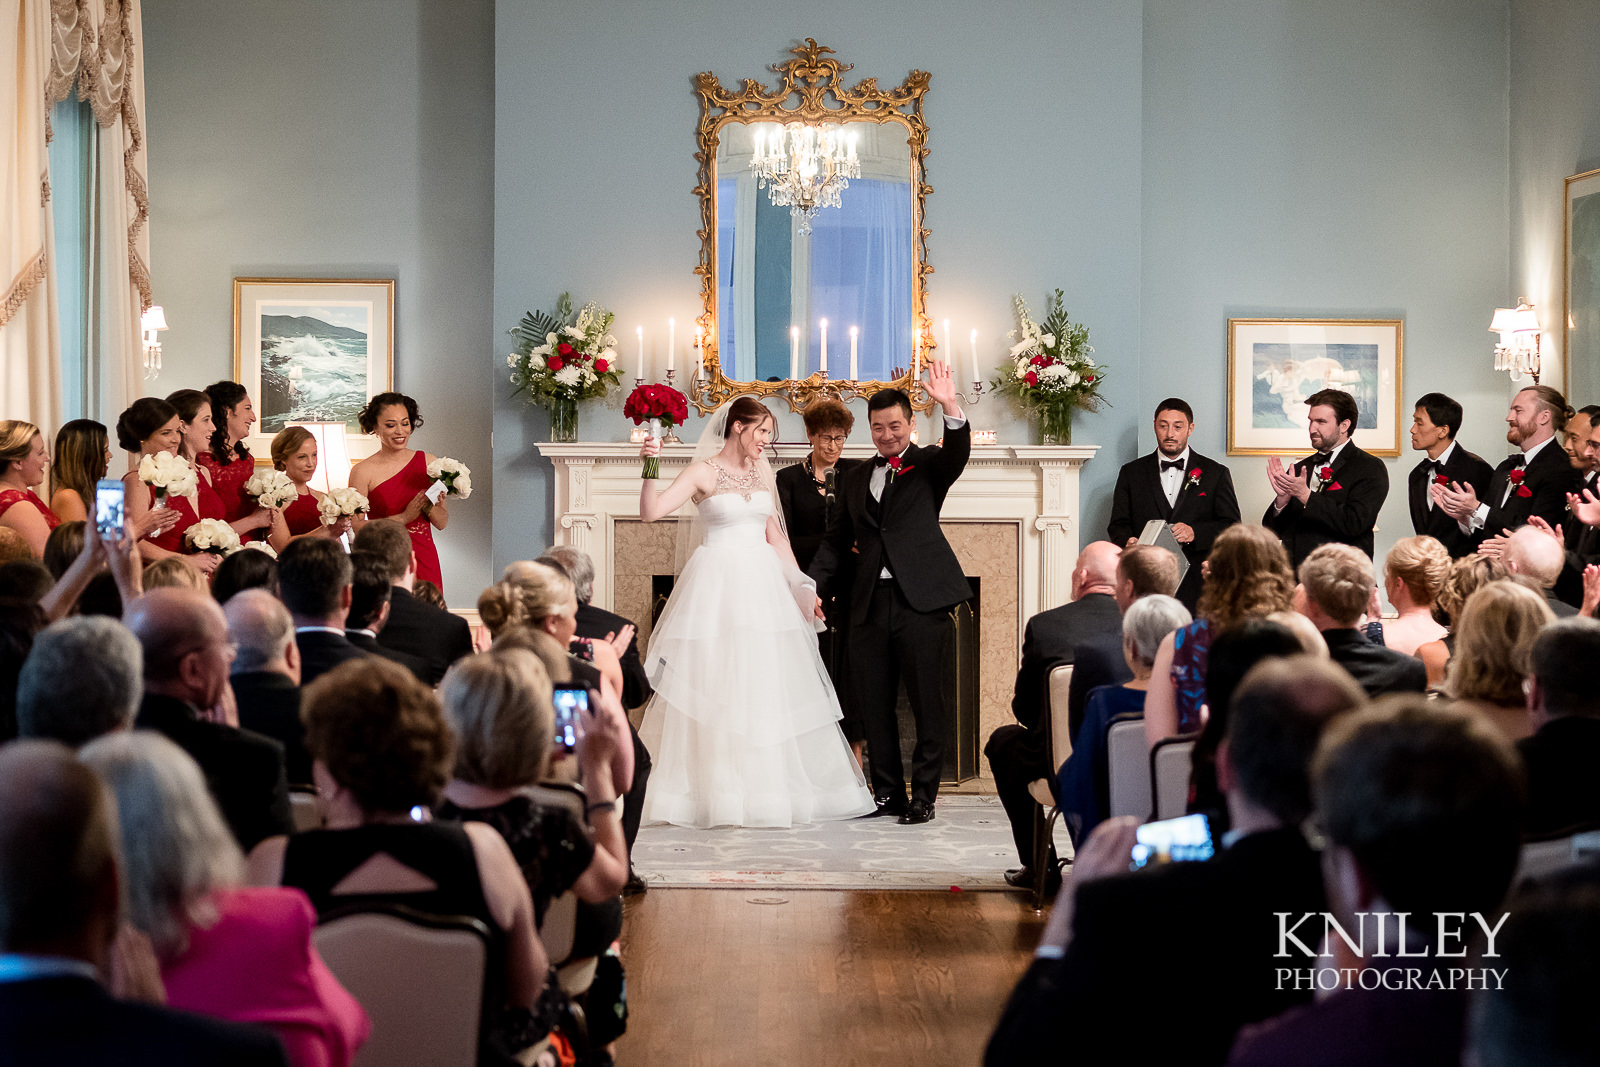 079 - Rochester NY wedding pictures - Genesee Valley Club - Ceremony and Reception - XT2B6828.jpg